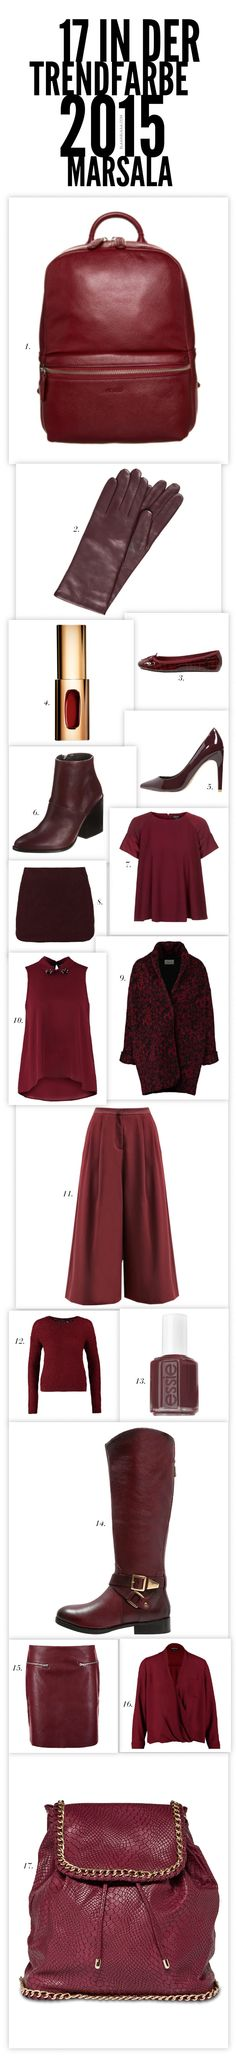 17 in der Trendfarbe 2015 Marsala | The House of Beccaria~